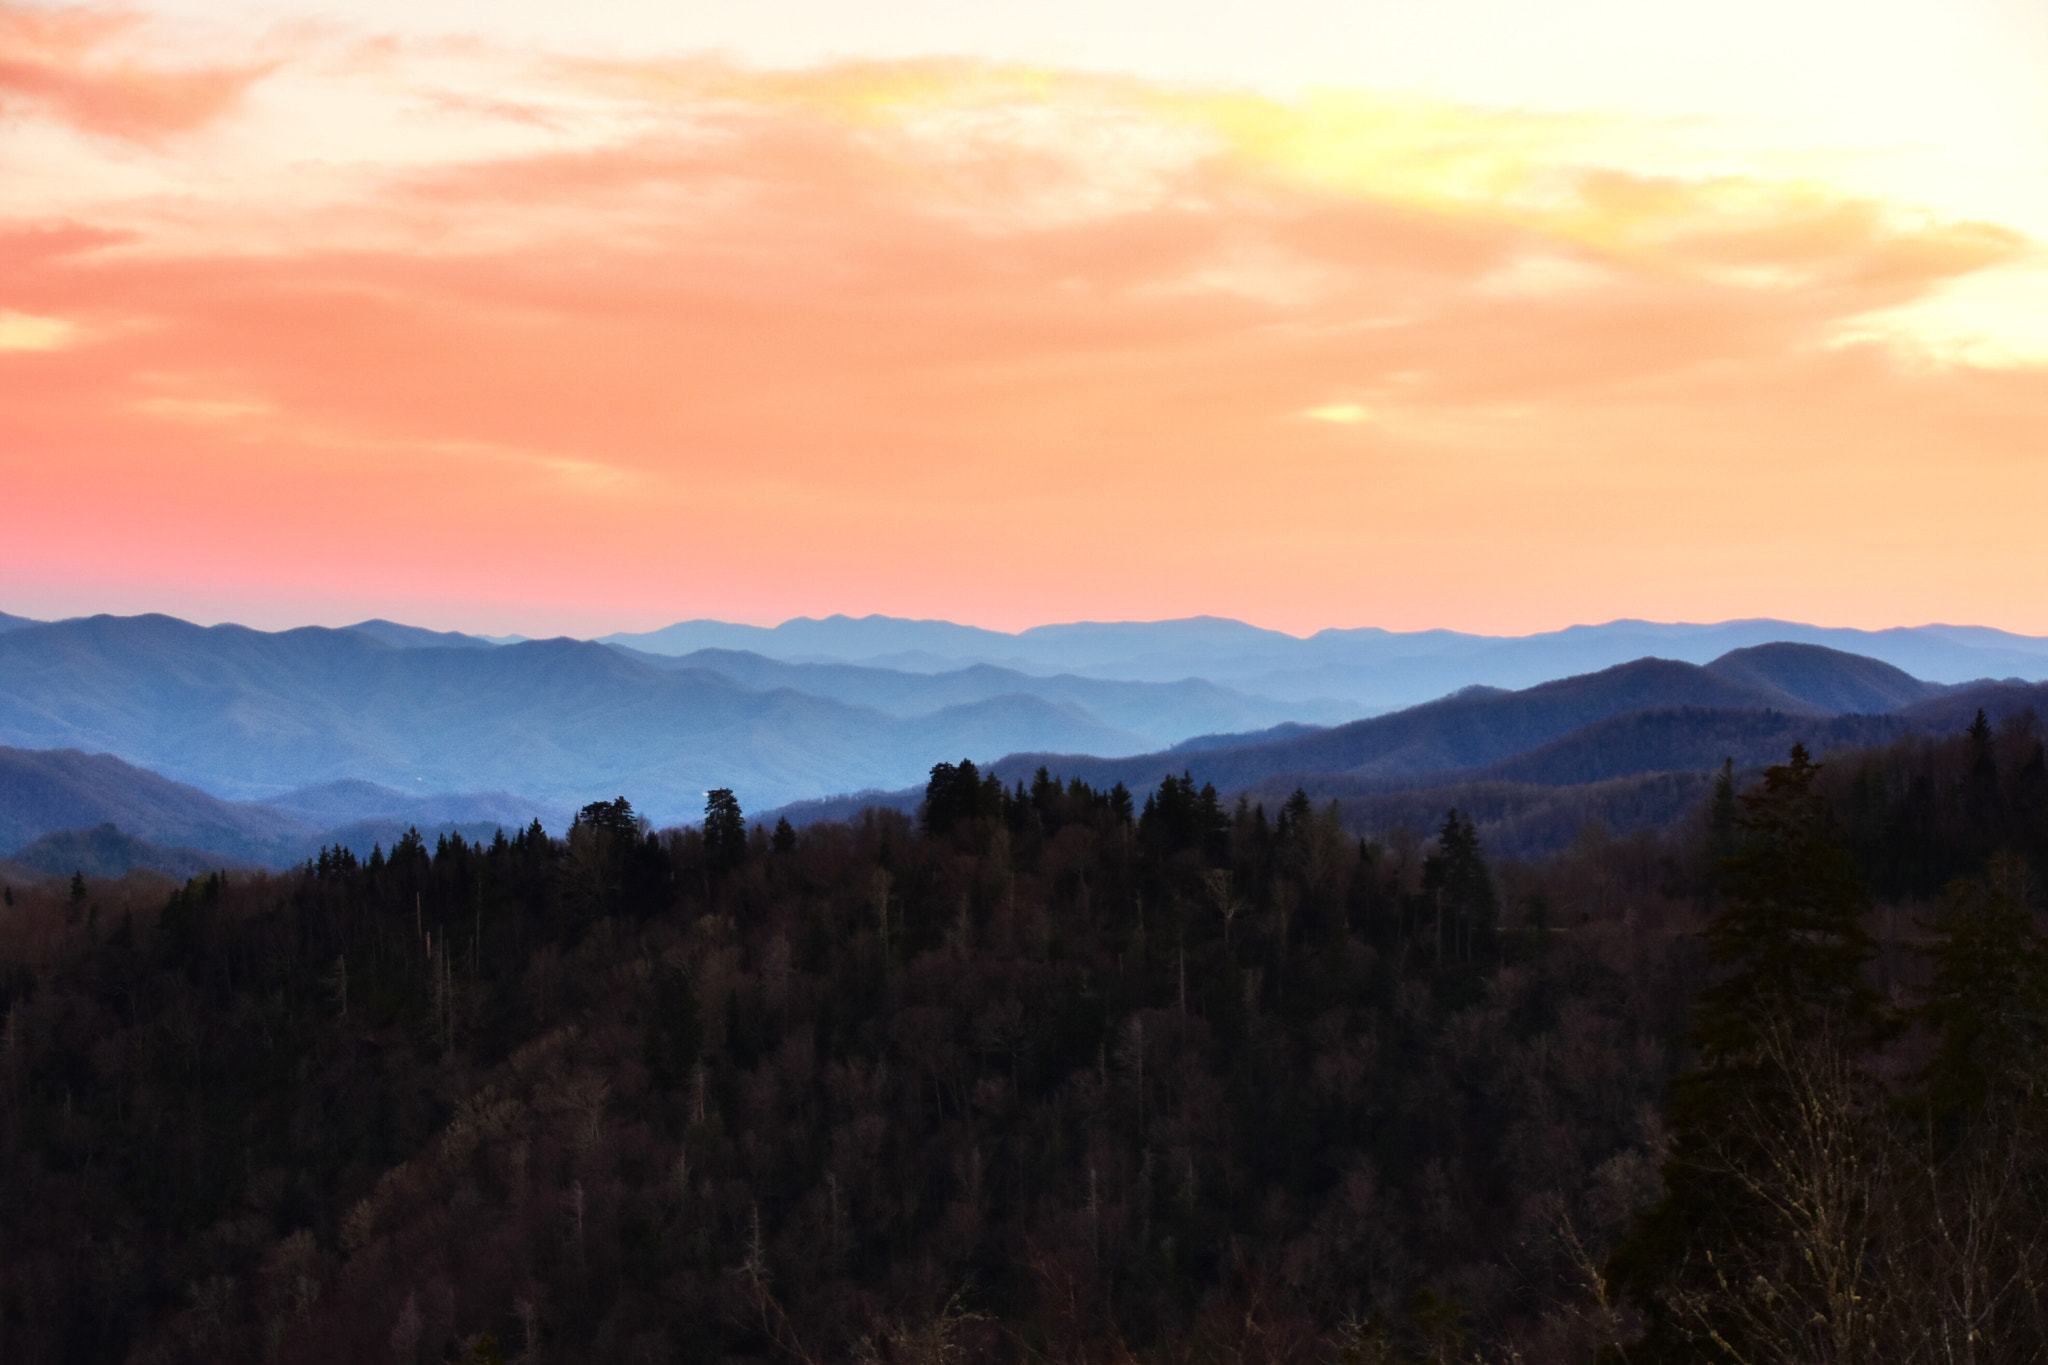 File:The Sky Is On Fire Over The Blue Ridge Mountains (131194559).jpeg - Wikimedia Commons